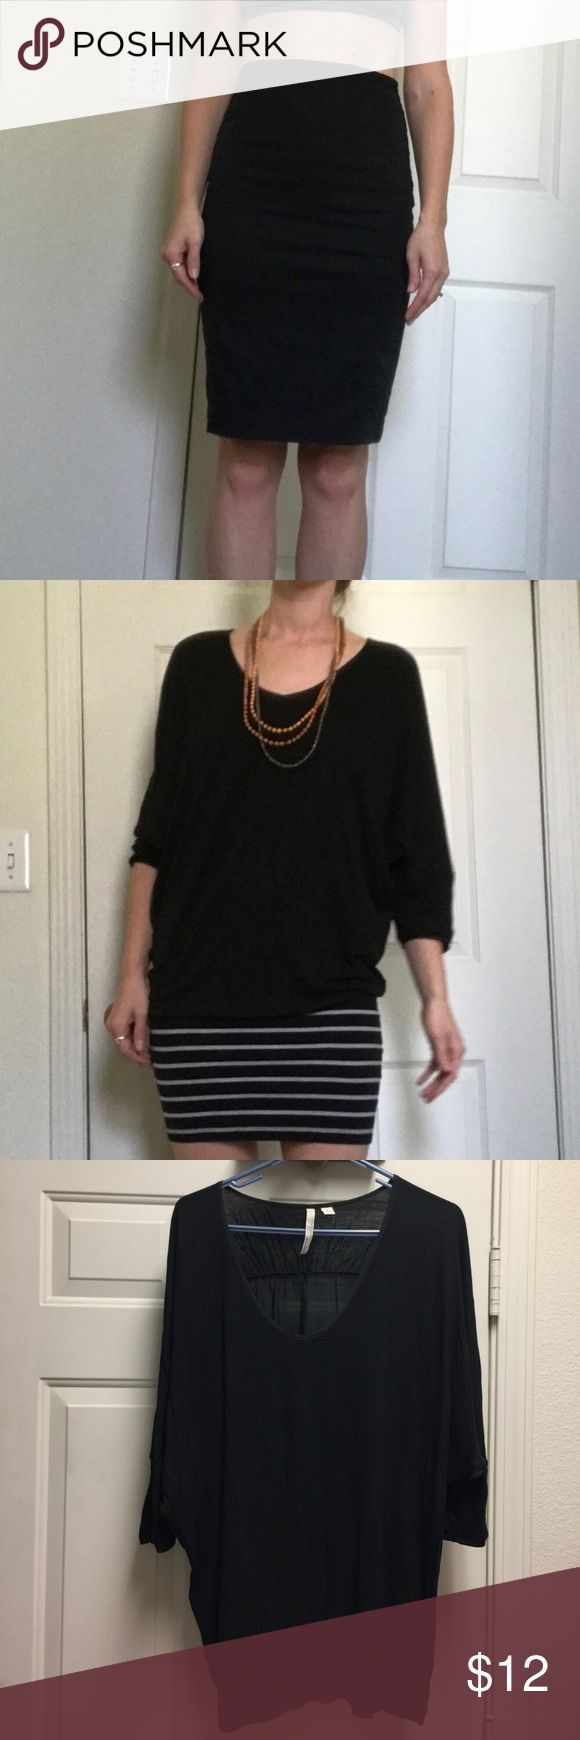 ❗️BUNDLE❗️Professional/workwear for all seasons! This 4 piece bundle includes: black Express high-waisted pencil skirt in size 2 (I would say it fits size 2-4); NY & CO 3/4 length top/tunic with jersey front material and silky back material in size Small; Gap heather gray long sleeve shirt (not quite crop top, but hits right at waist/top of pants) in size Small; and Xhiliration racerback tank top, silky material in size Small!   Skirt would be perfect with each shirt tucked in, slightly…